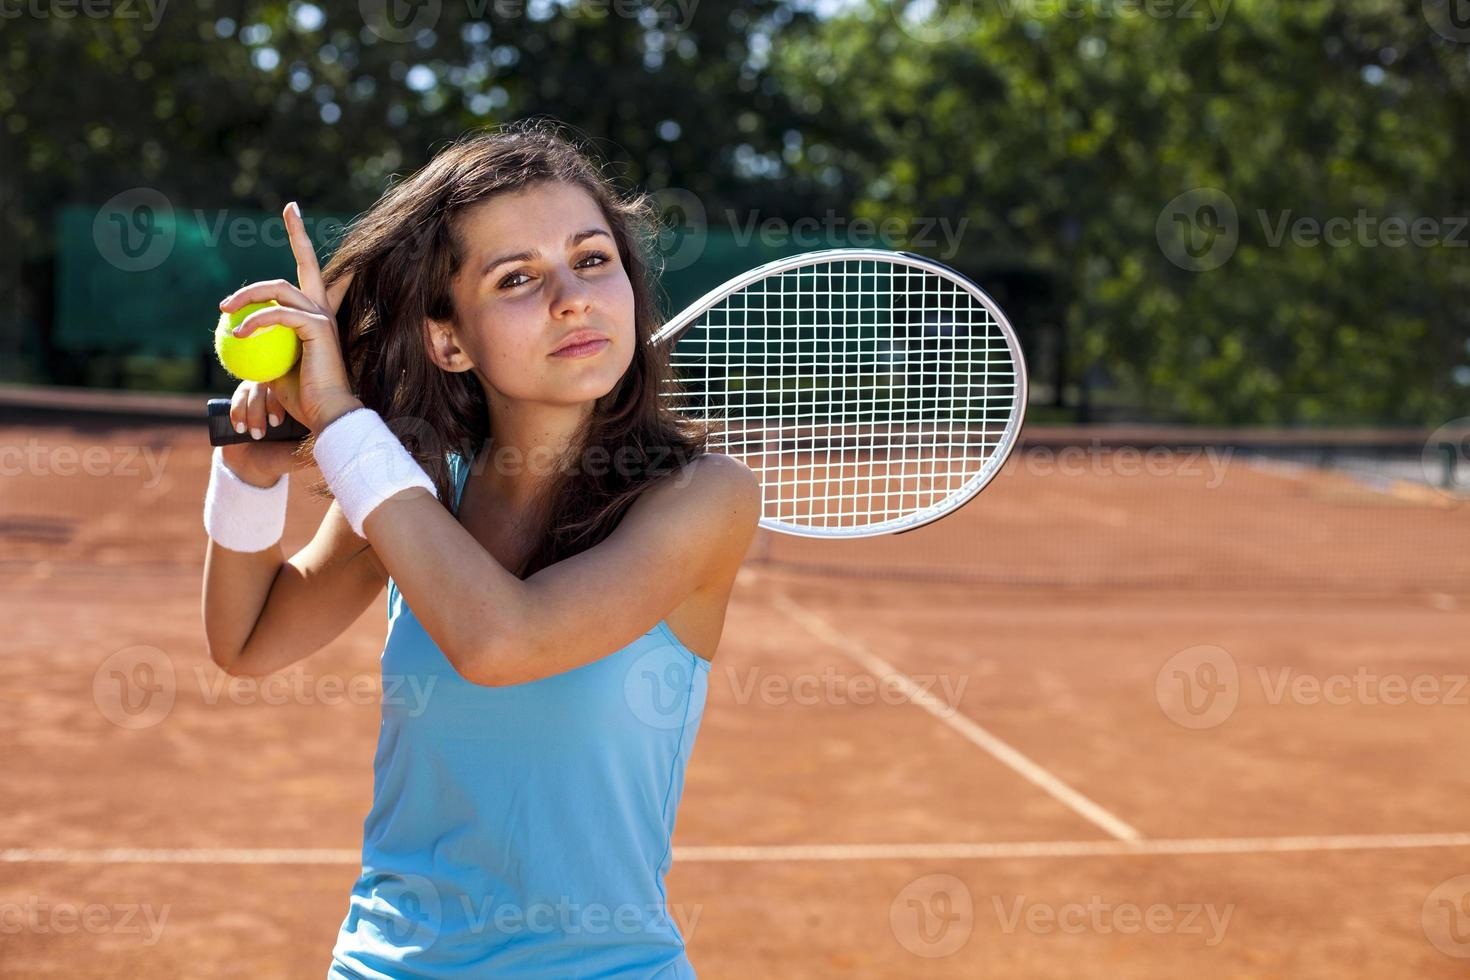 Young girl holding tennis ball on court photo